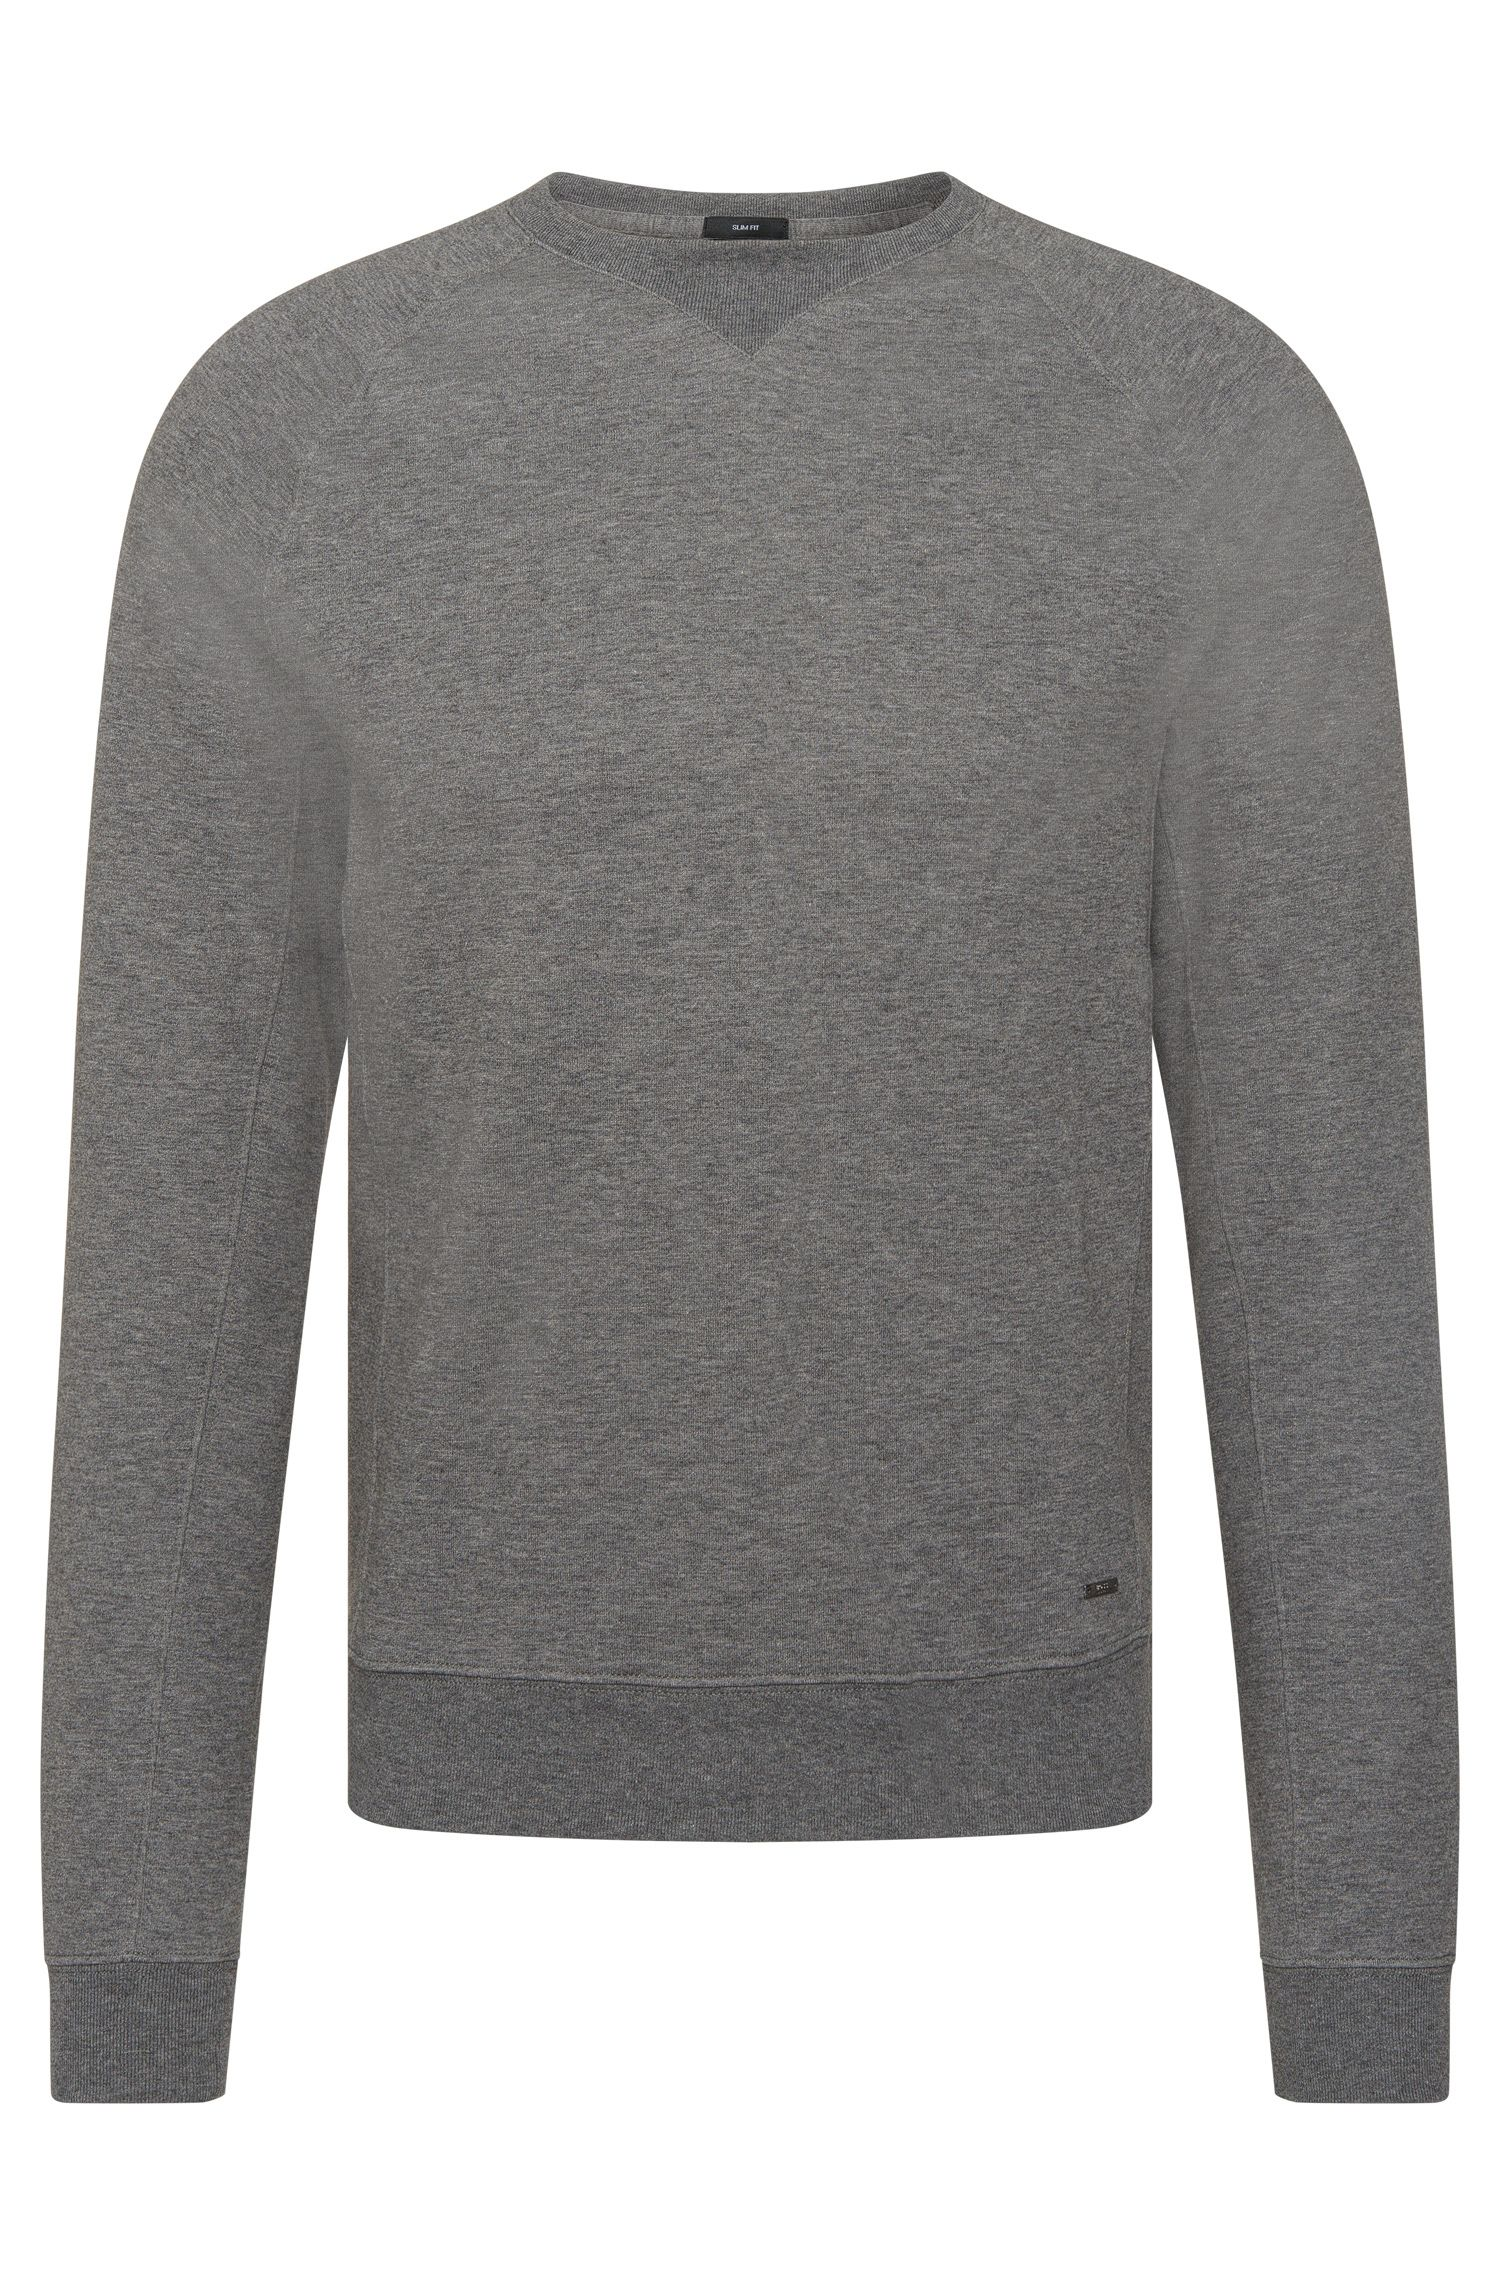 'Skubic' | Cotton Blend Sweatshirt